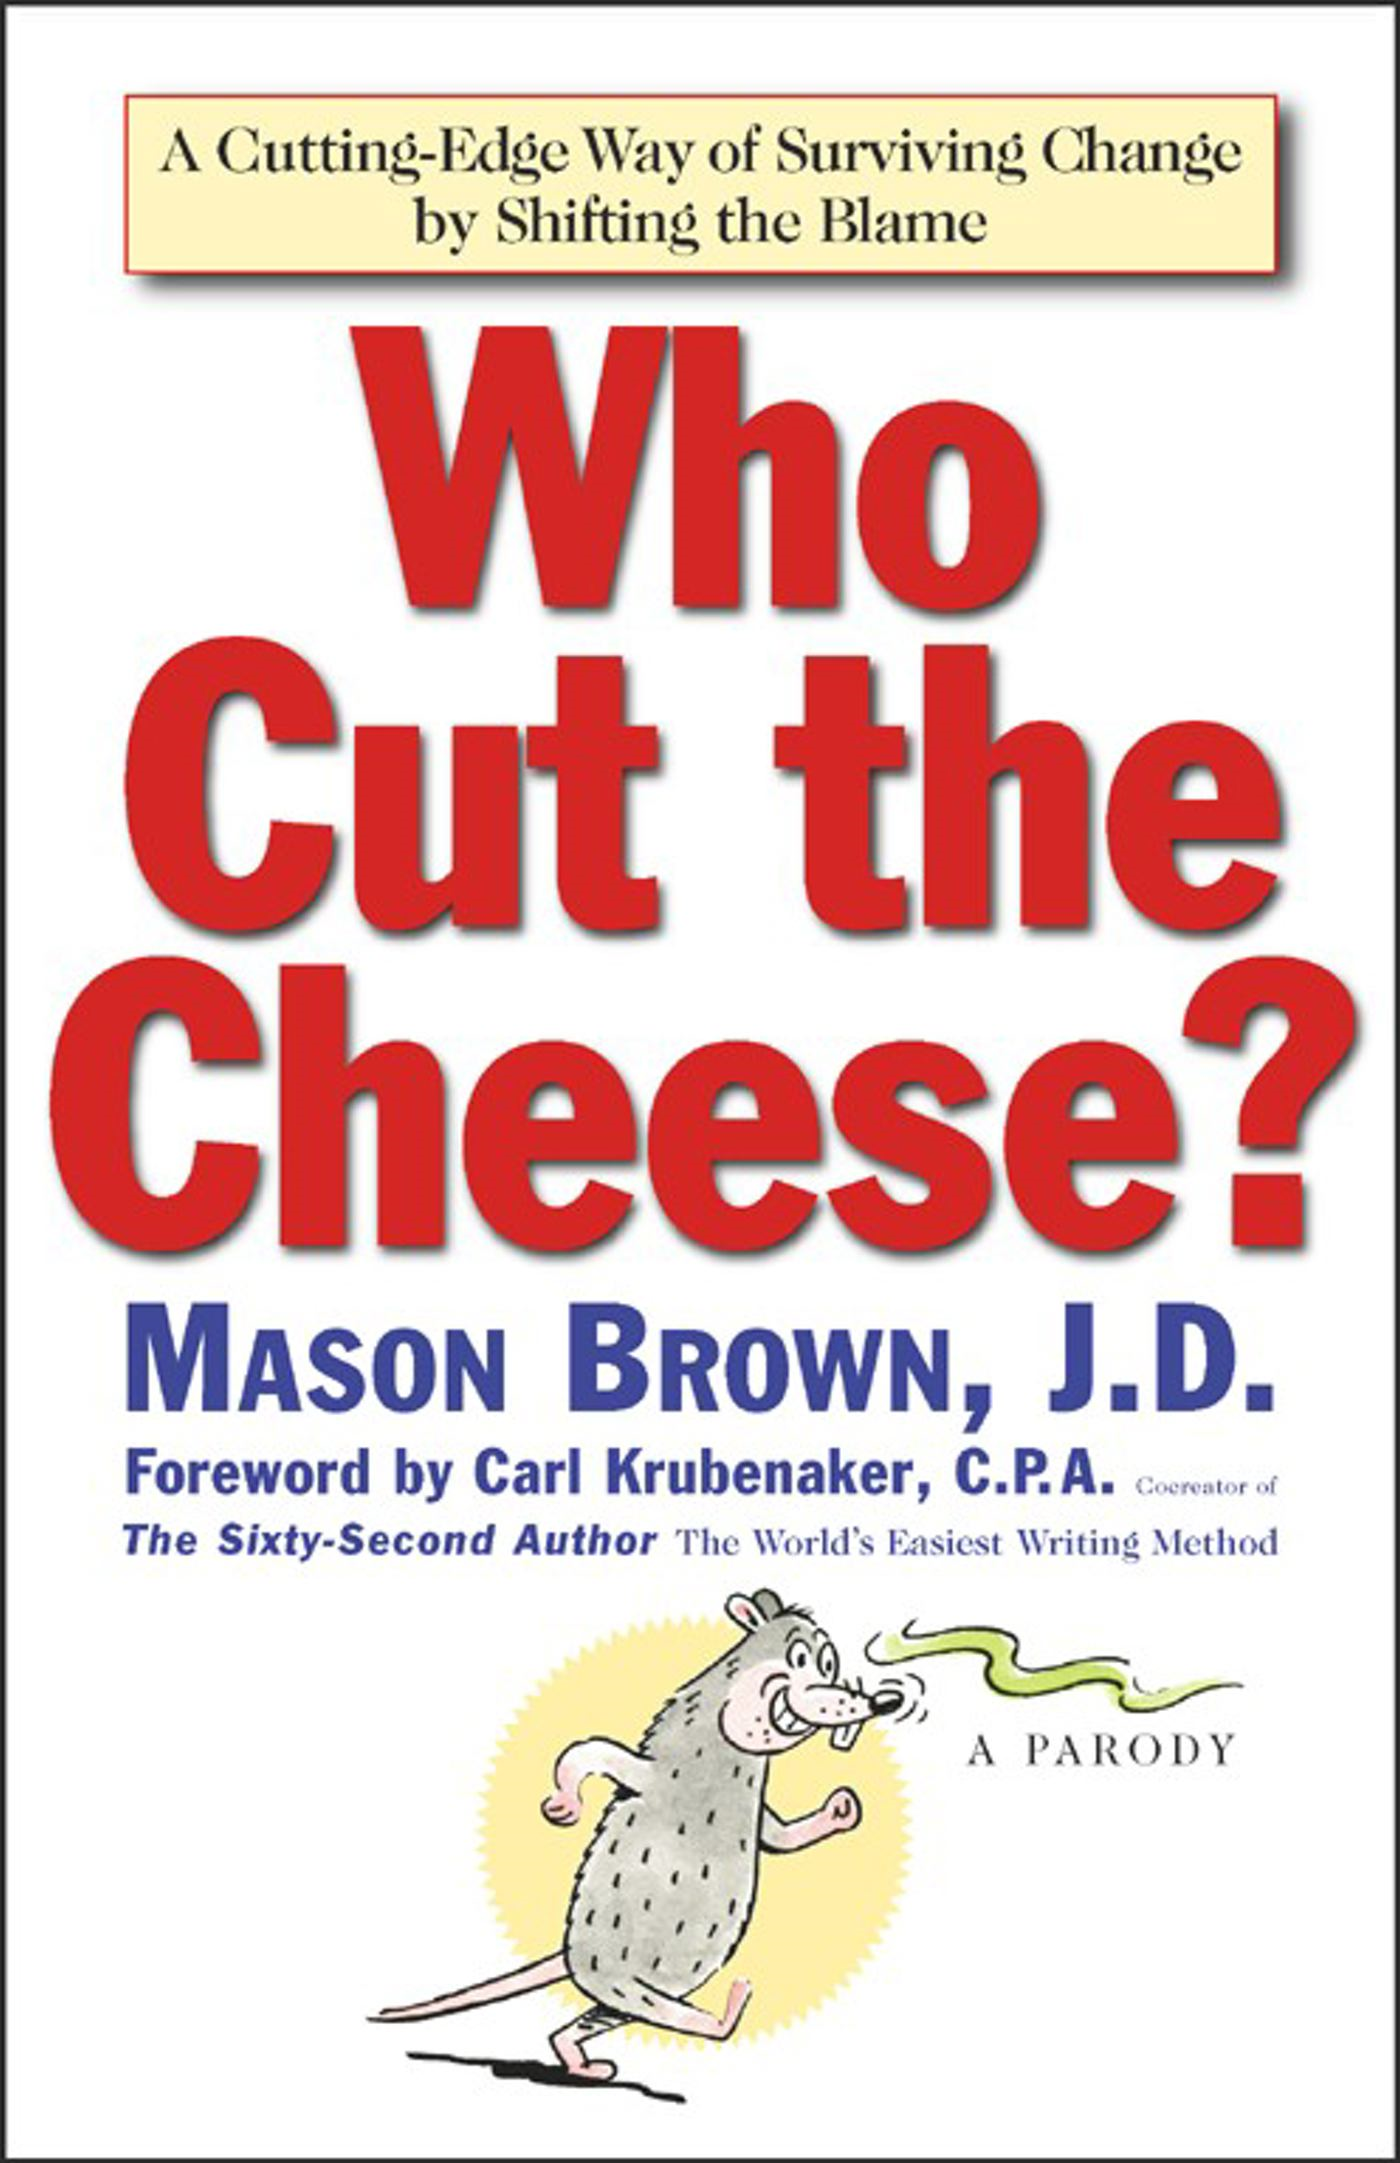 Who Cut The Cheese? A Cutting Edge Way of Surviving Change by Shifting the Blame